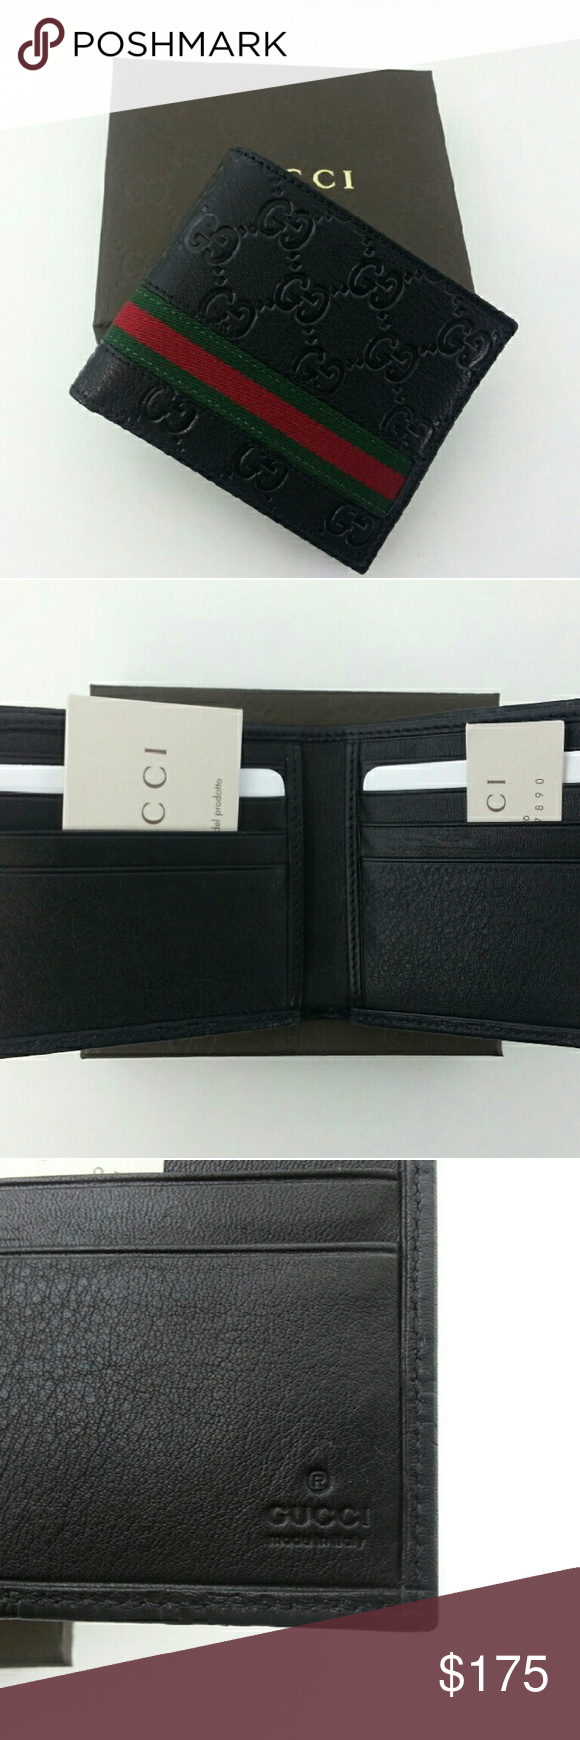 60b9184bae1eb7 Gucci Mens Black Web Strip Bi fold Wallet GUCCI Original Authentic Mens  Black